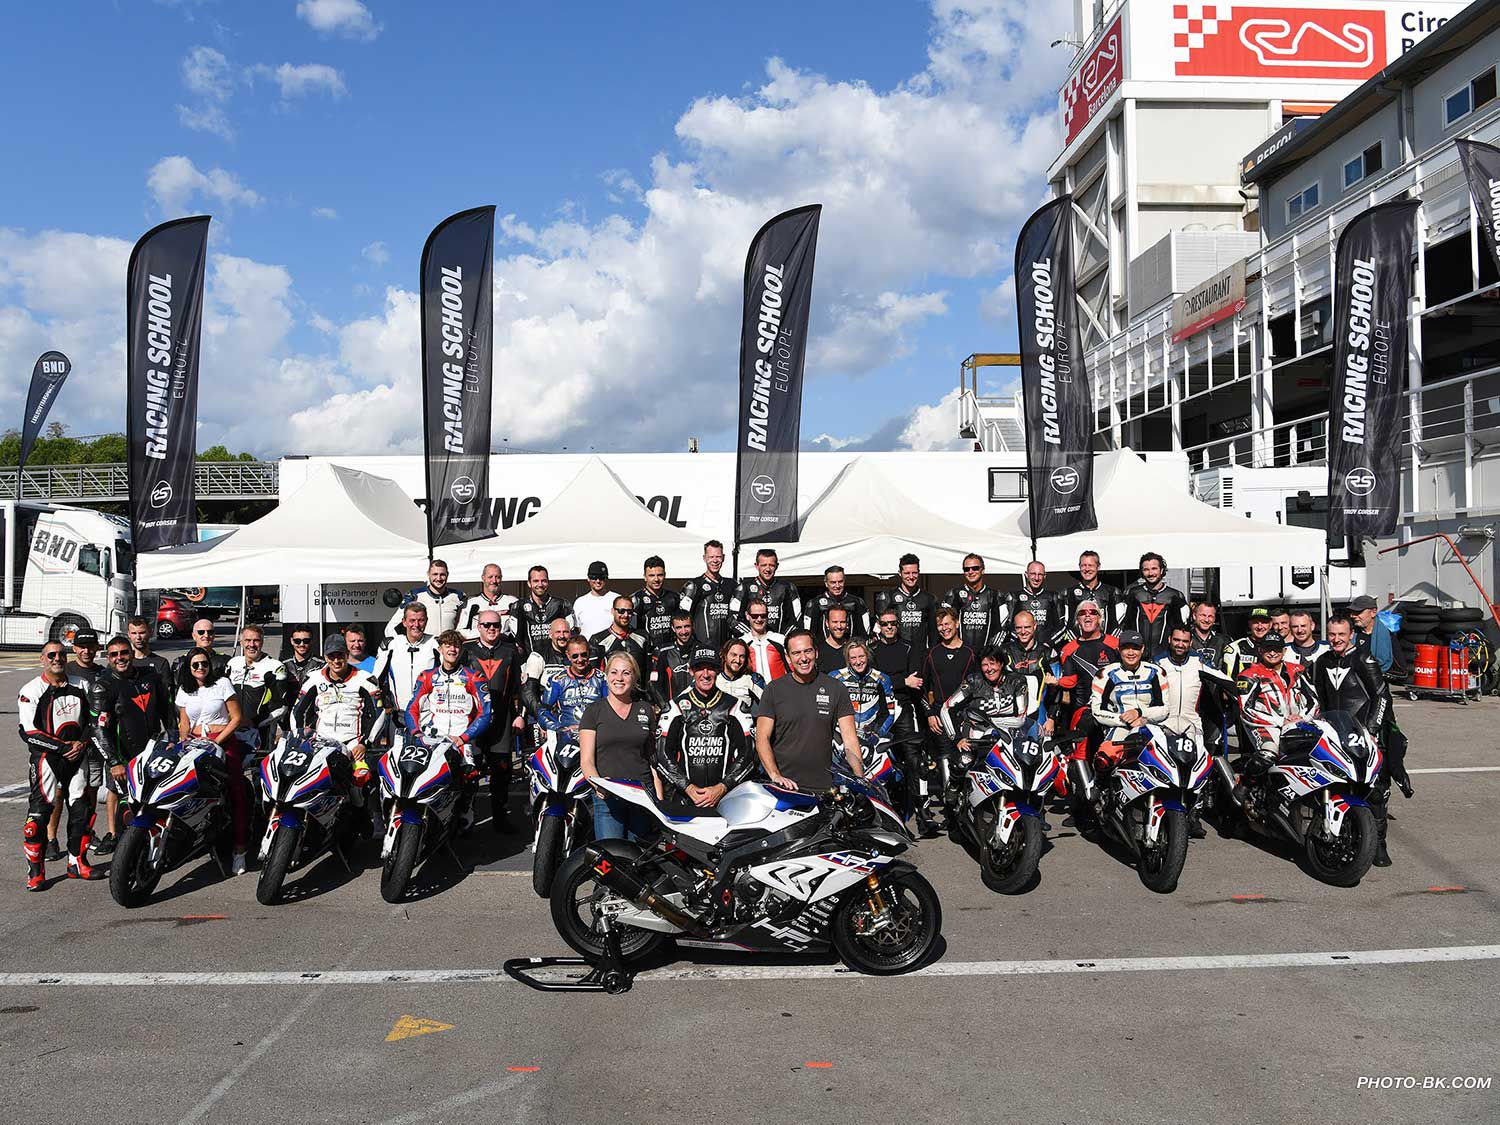 Riders from all over the world gather to ride with RSE. Epic group shot after three incredible days on the track.